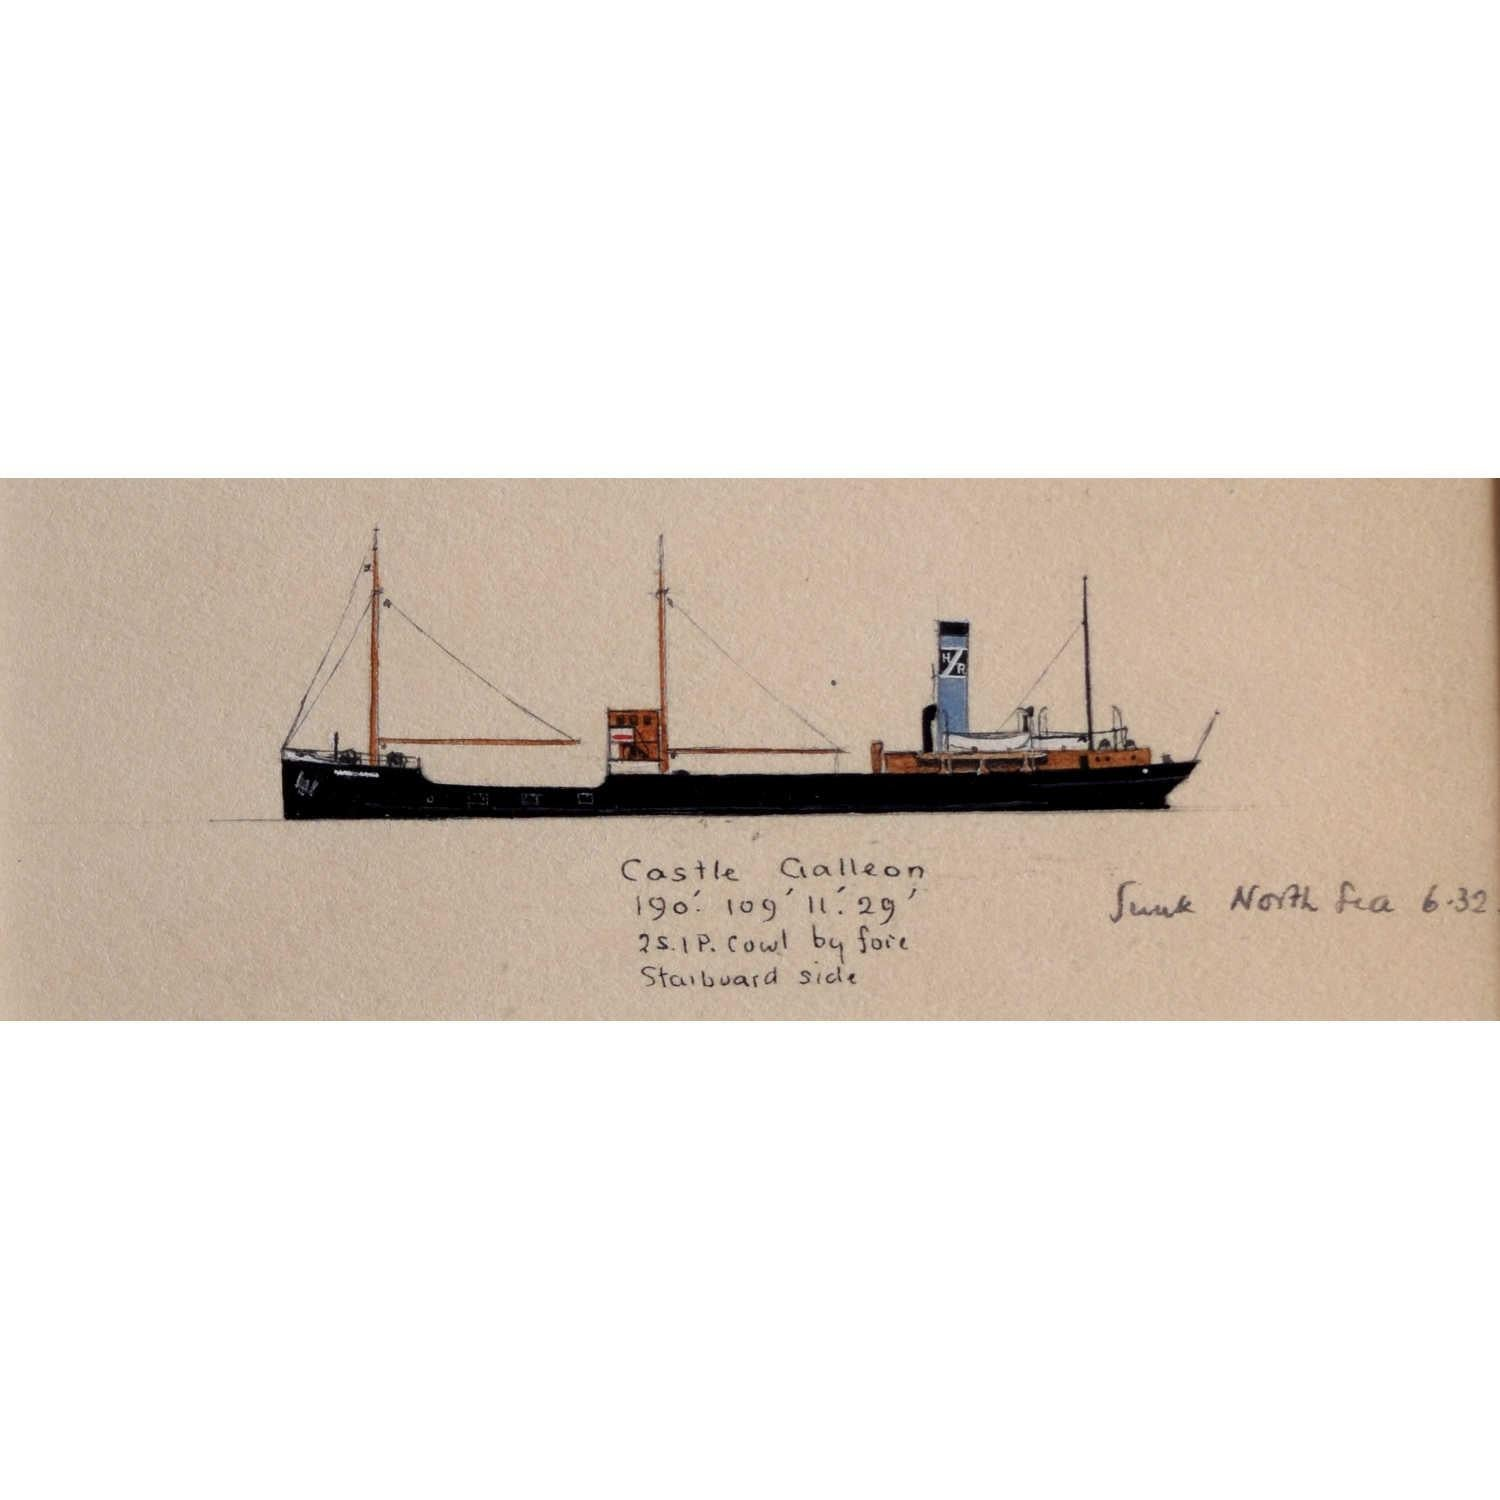 Laurence Dunn, Drawing of Coastal Tramp SS Castle Galleon (c1925) Thames Estuary